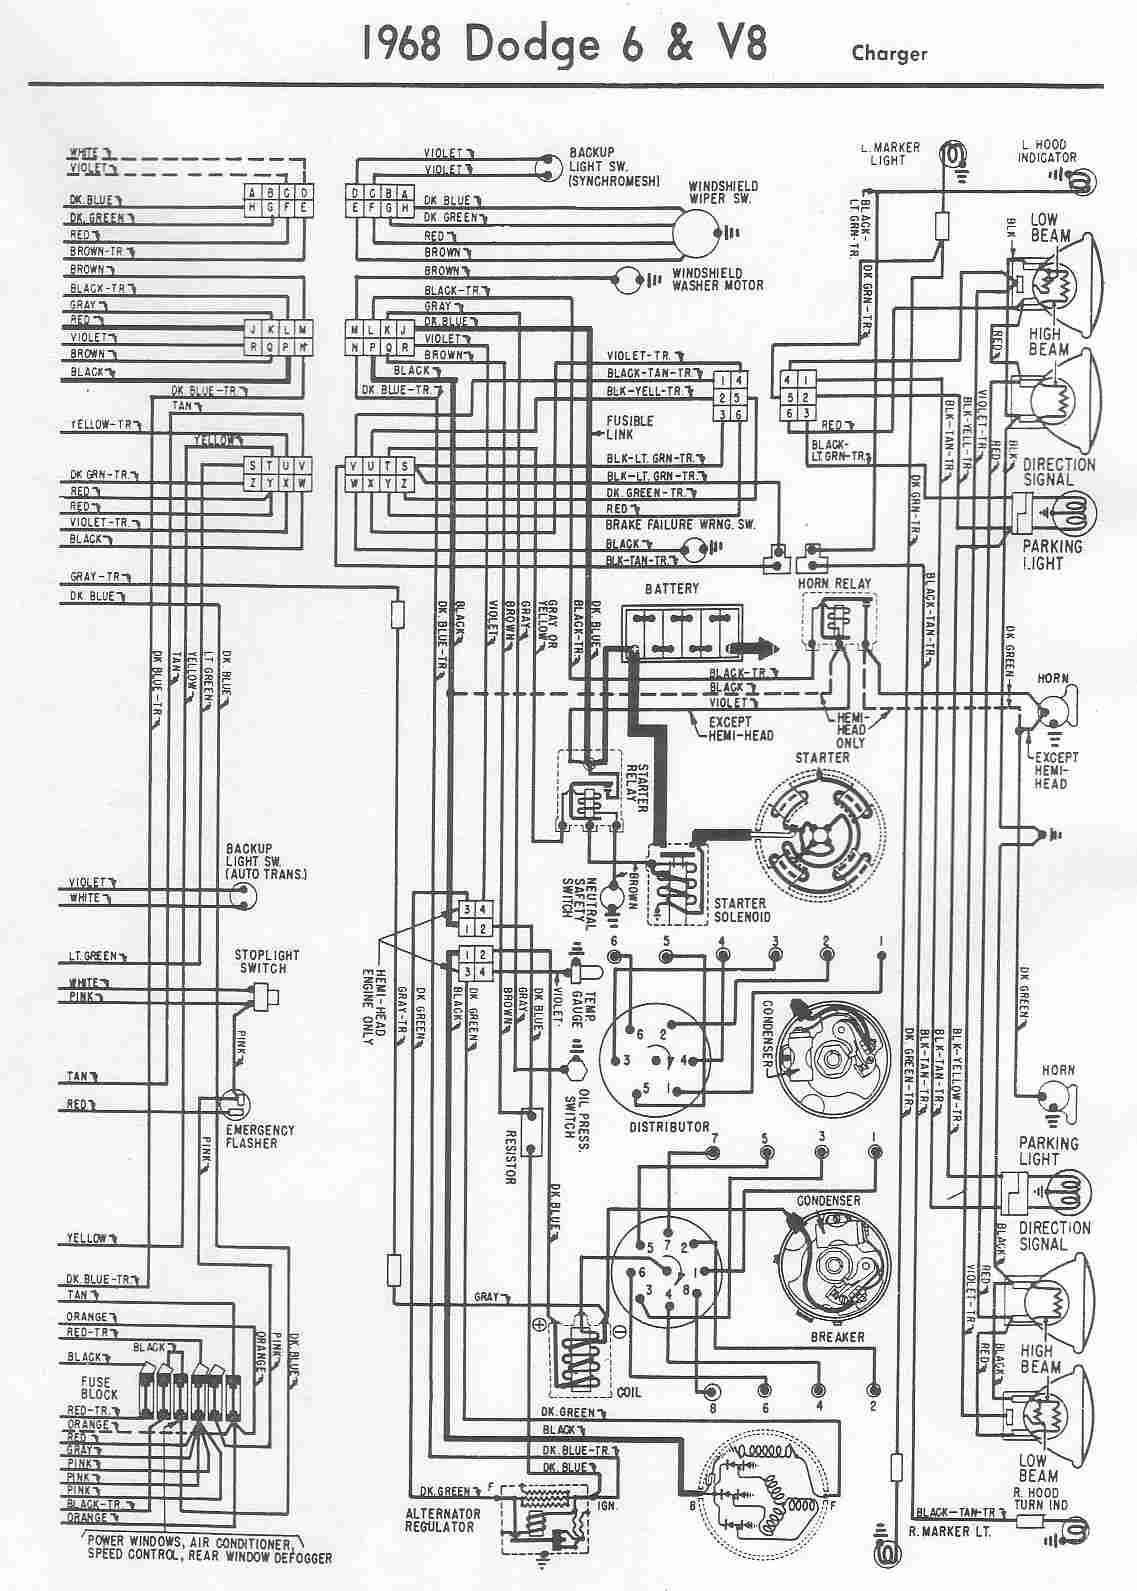 1969 Dodge Wiring Diagram Wiring Diagram Schematics